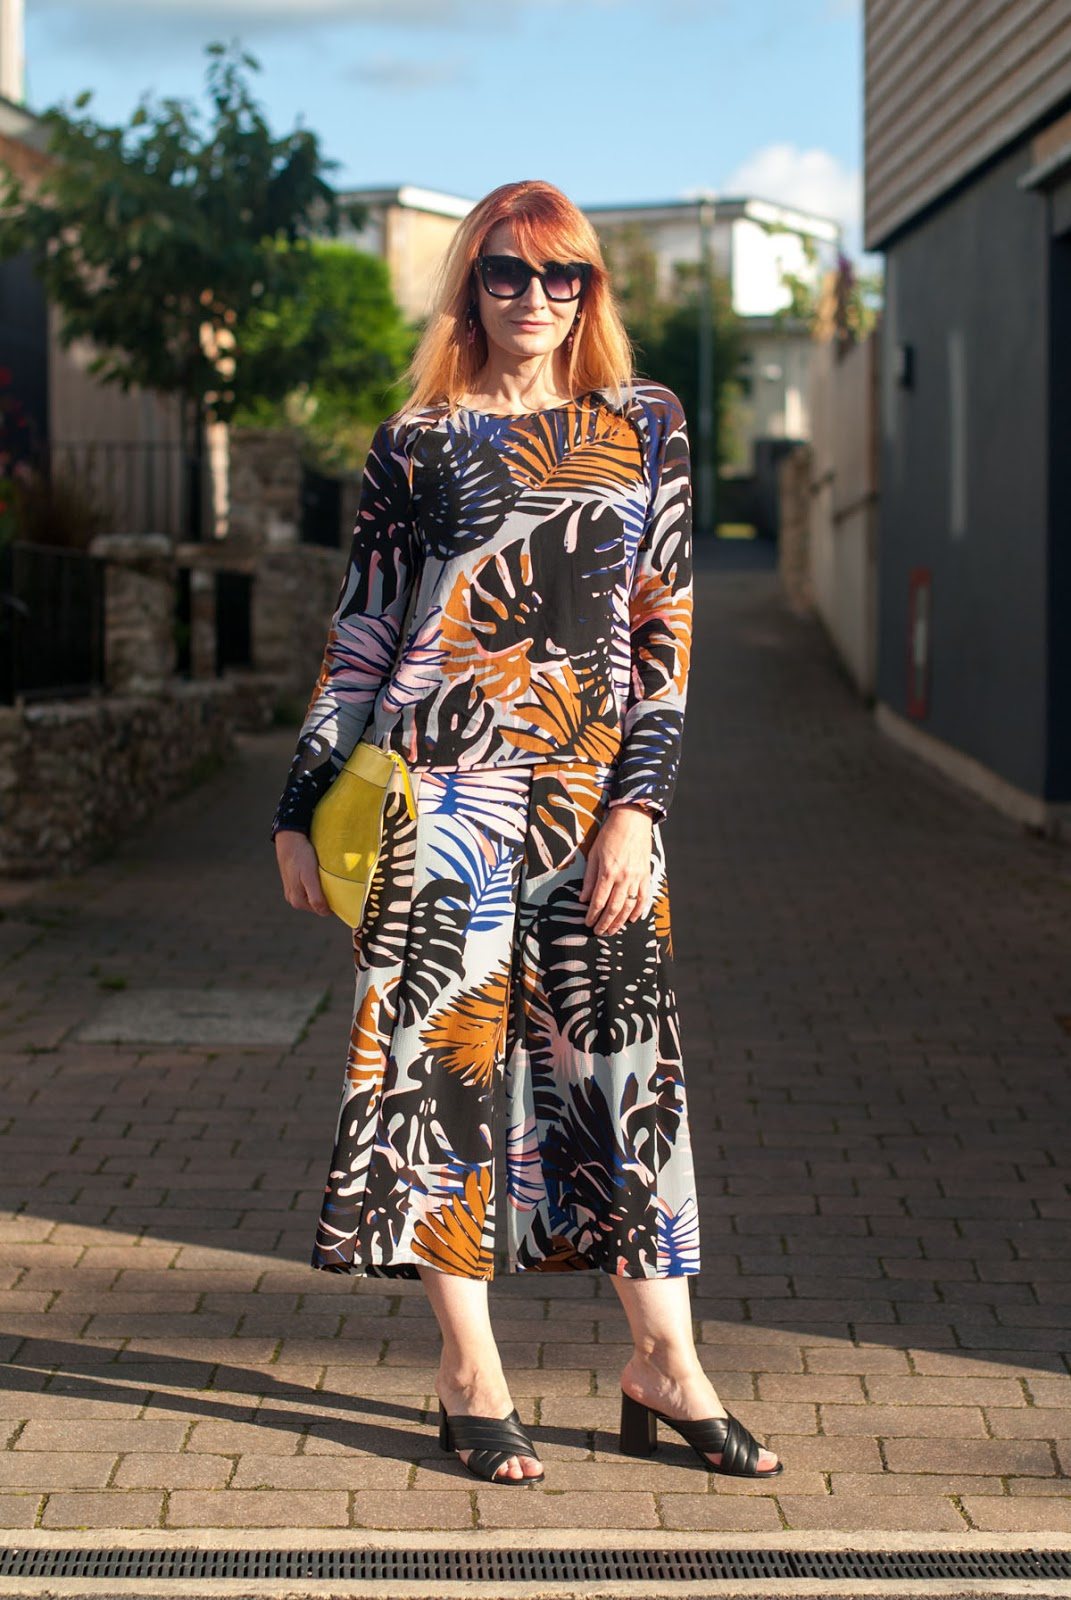 Palm print co-ords: Long sleeve top and wide leg crop trousers culottes pants  yellow suede clutch bag  black crossover block heel mule sandals  statement oversized earrings  cat eye sunglasses | Not Dressed As Lamb, over 40 style